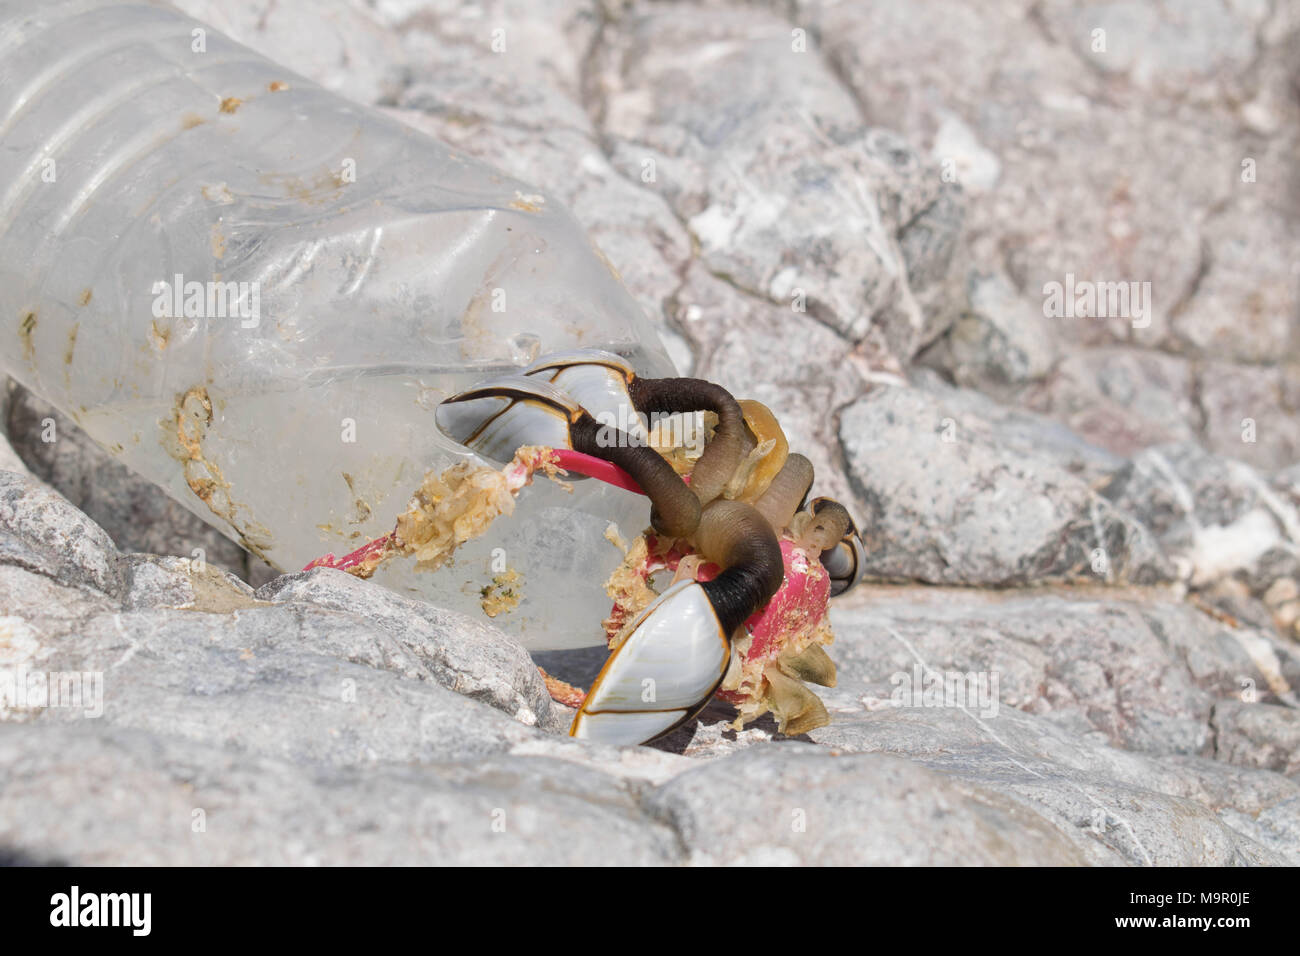 Barnacles attached to a plastic bottle washed up on rocks at the Worms Head, The Gower, Wales - Stock Image